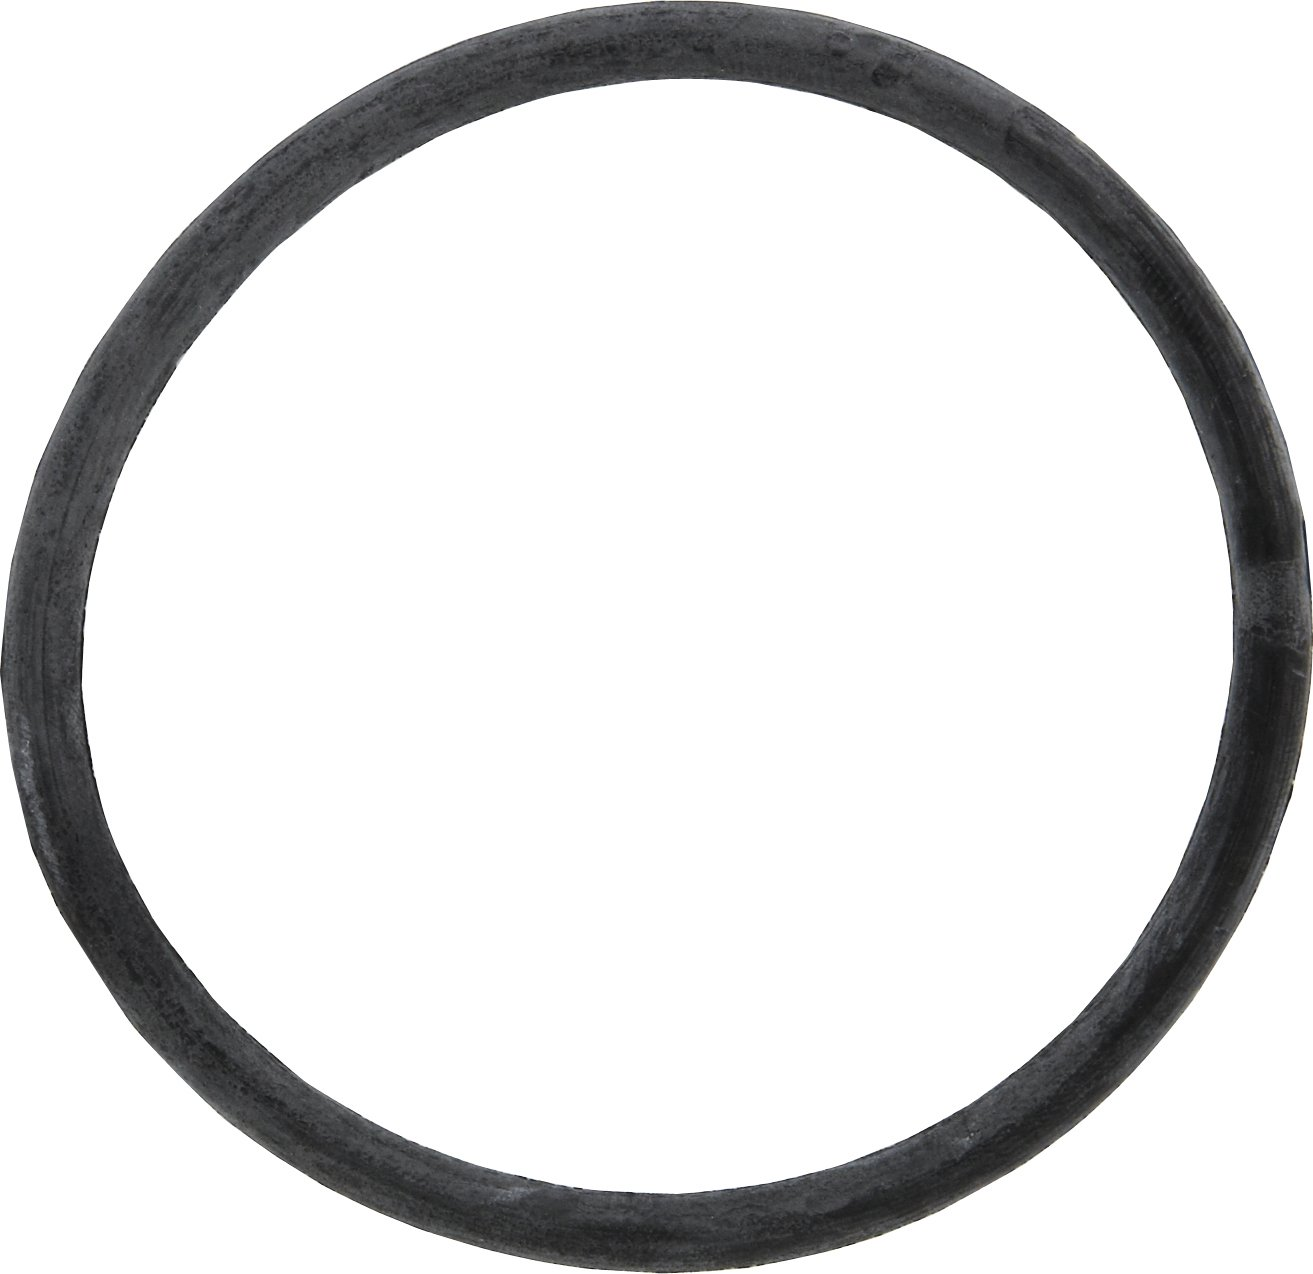 Whirlpool W10072840 O Ring Home Improvement Parts Diagram List For Model Wed7600xw0 Whirlpoolparts Dryer